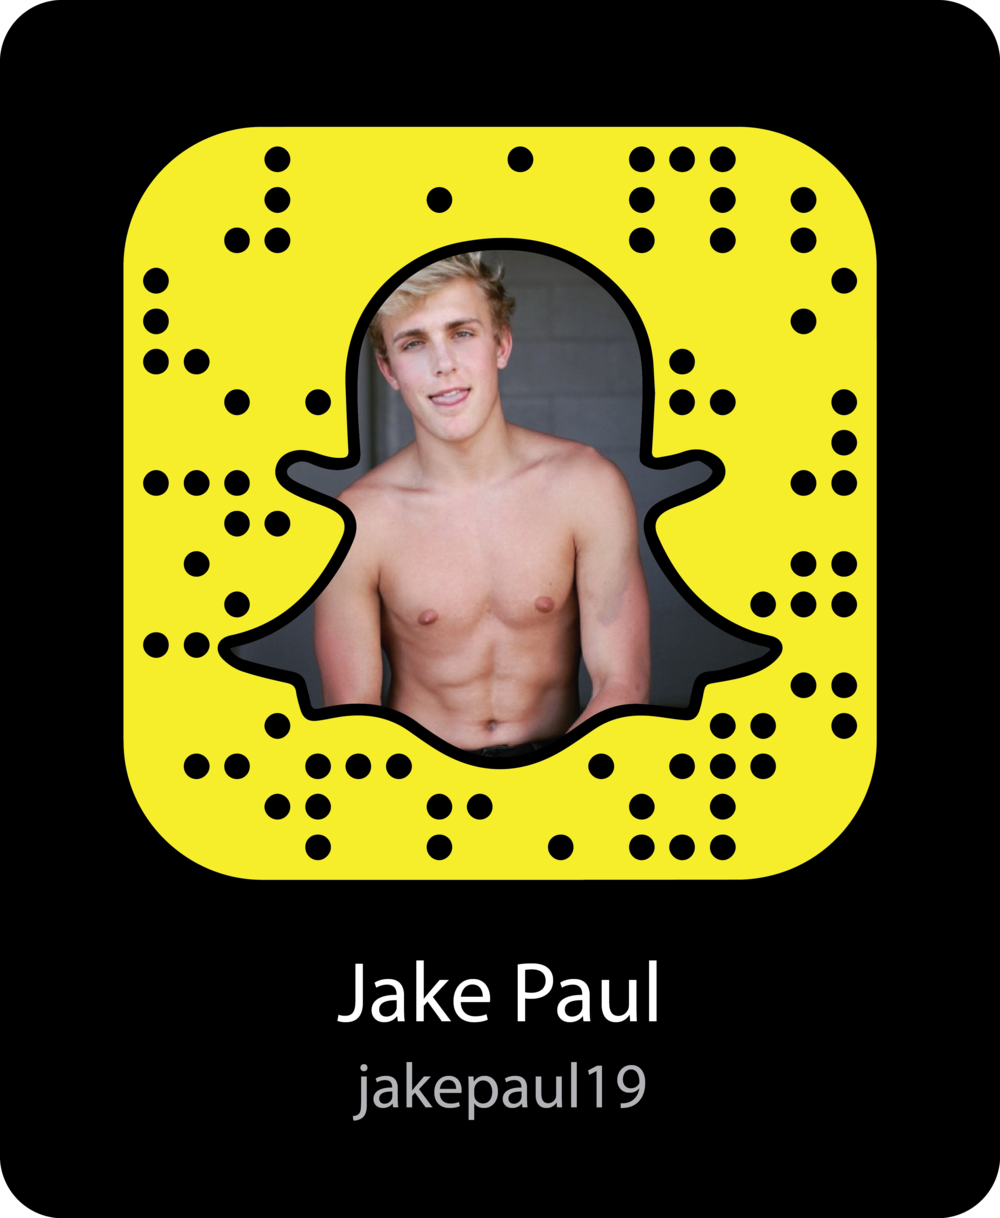 jake-paul-vine-celebrity-snapchat-snapcode